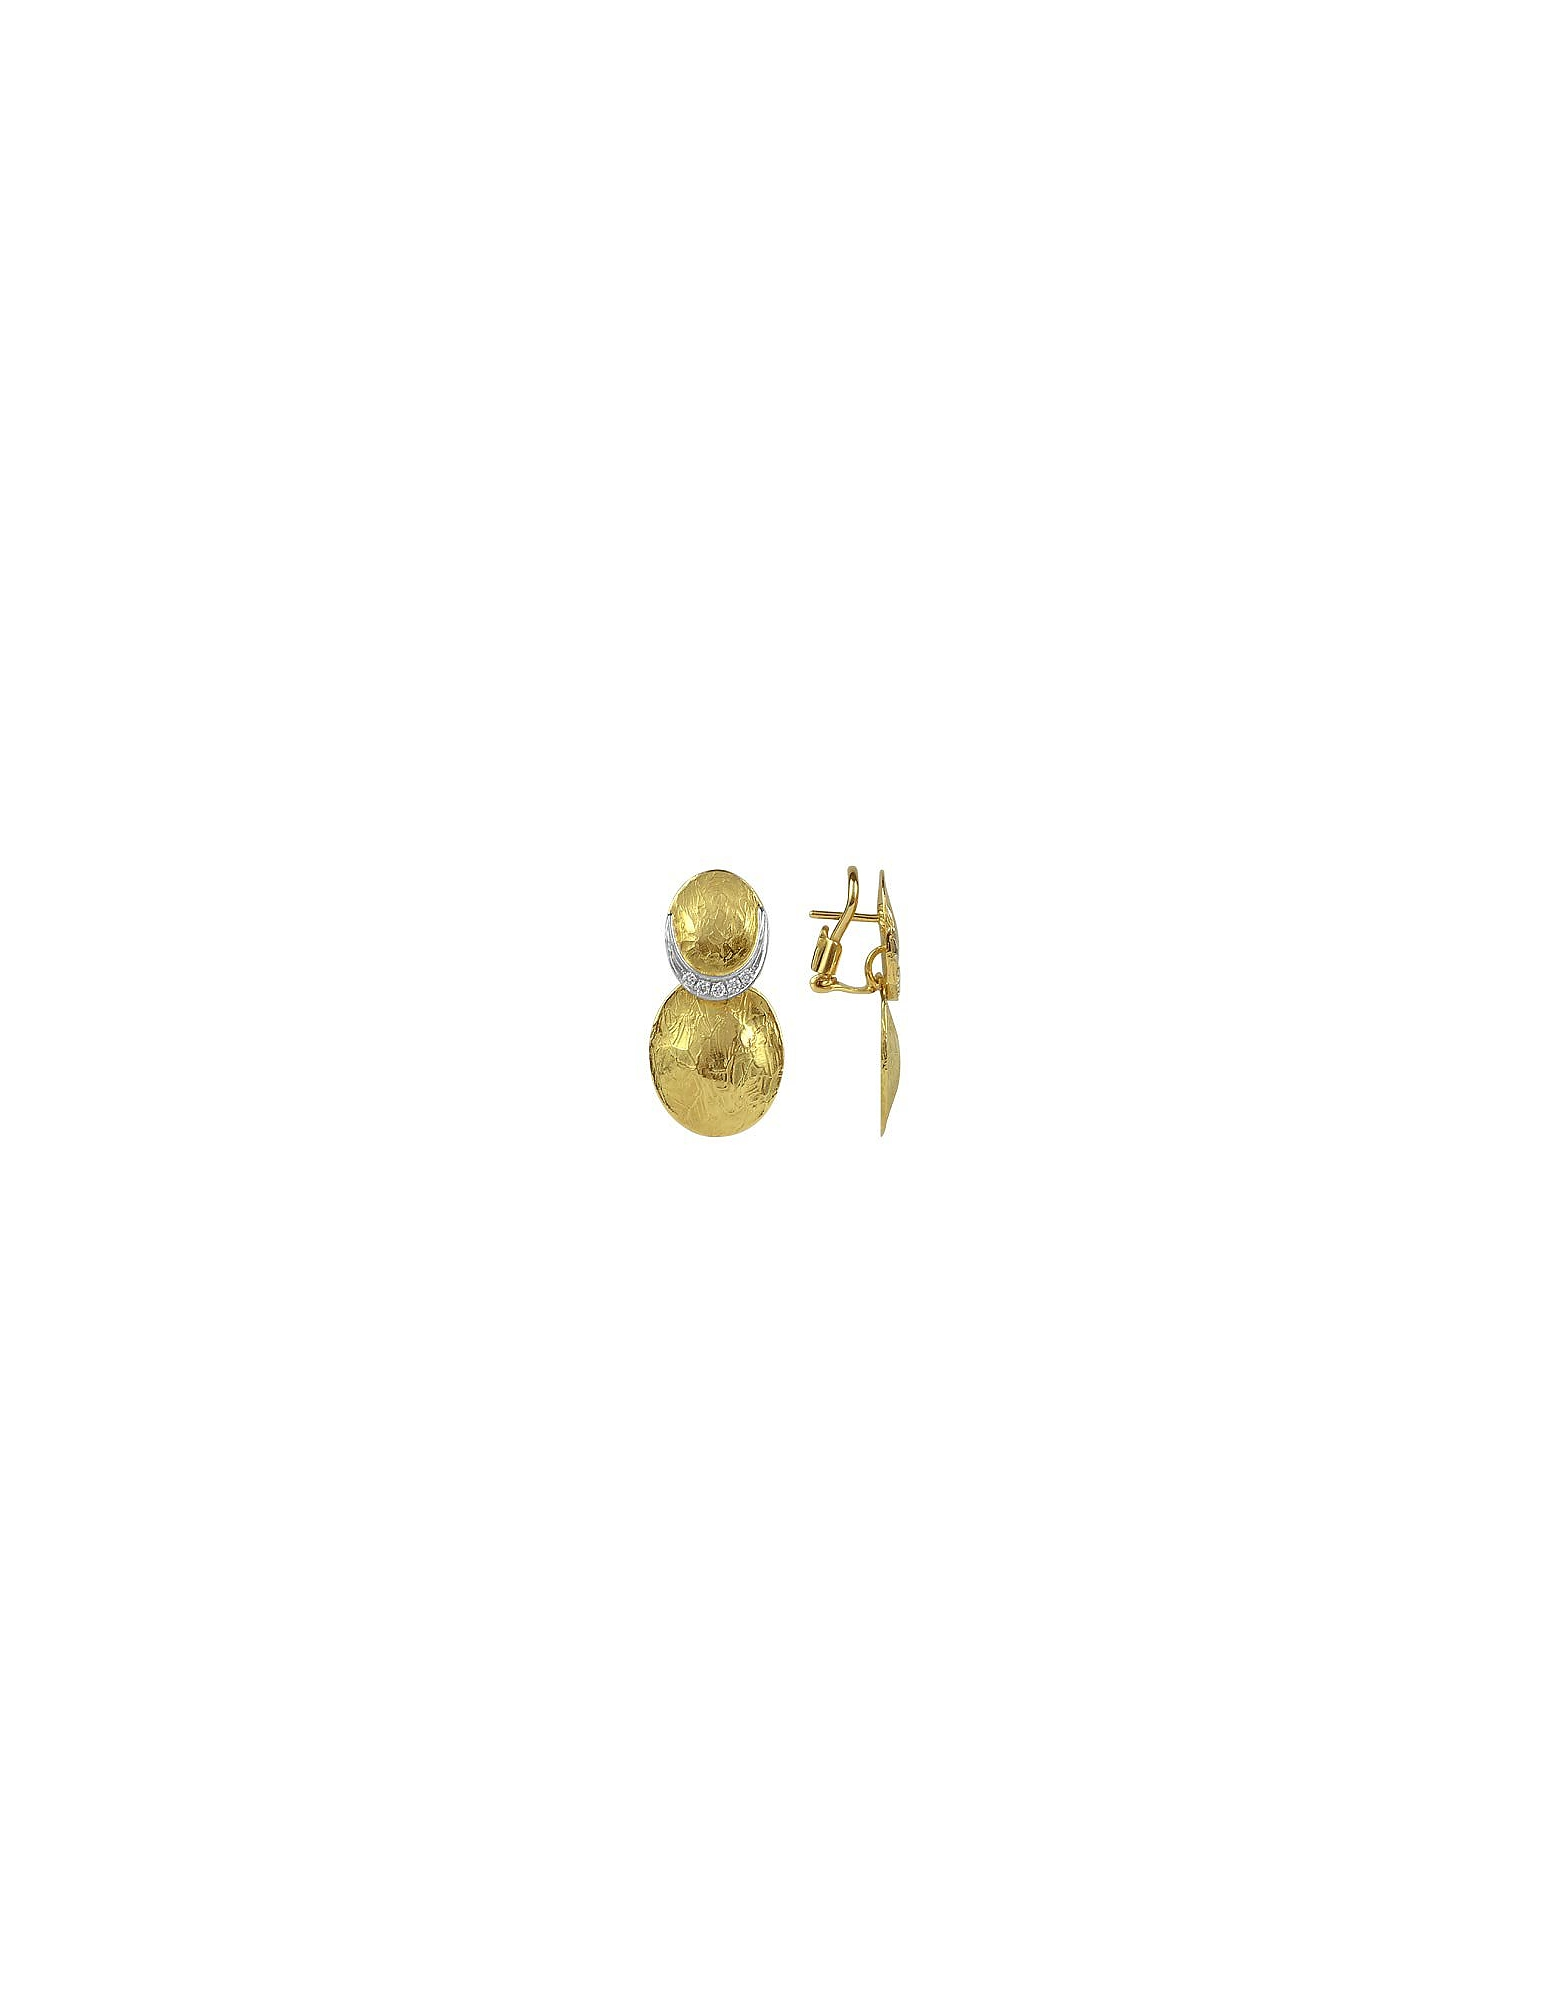 Torrini Earrings, Lenticchie - 18K Gold and Diamond Earrings